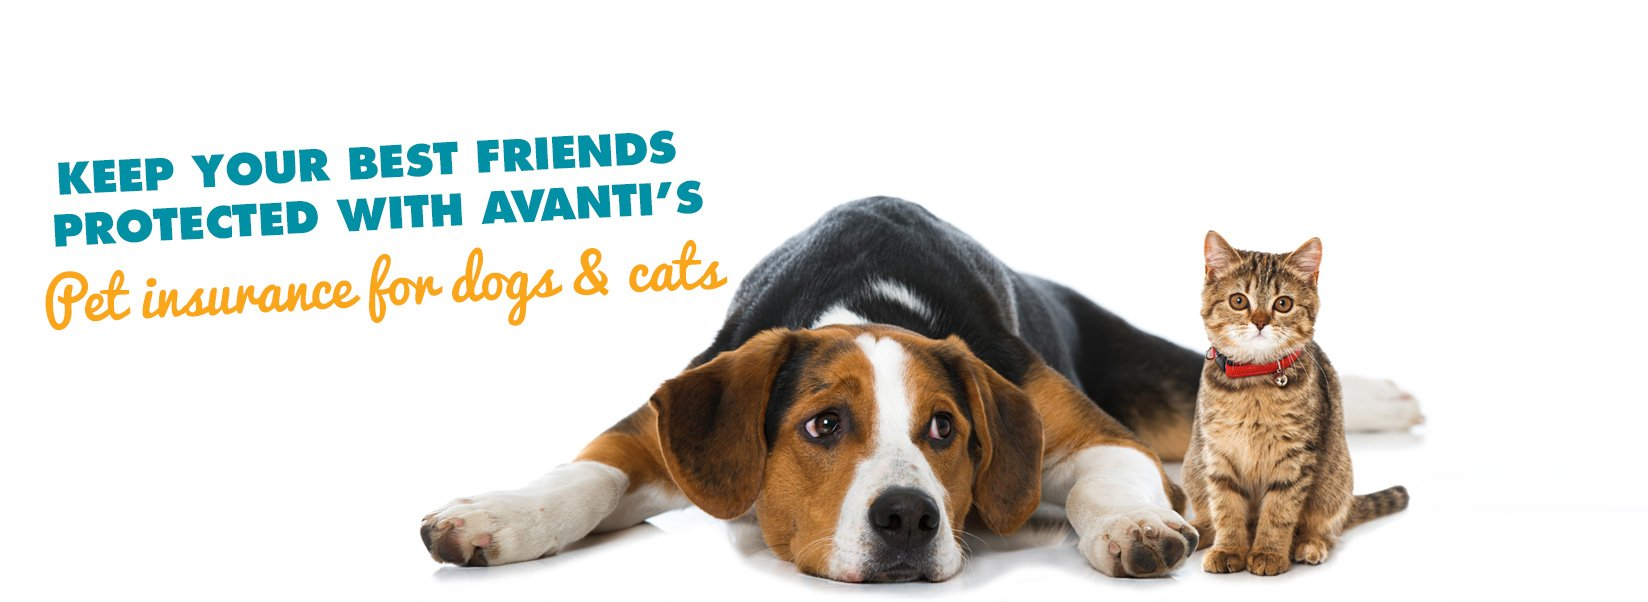 Keep your best friends protected with Avanti's pet insurance for dogs & cats